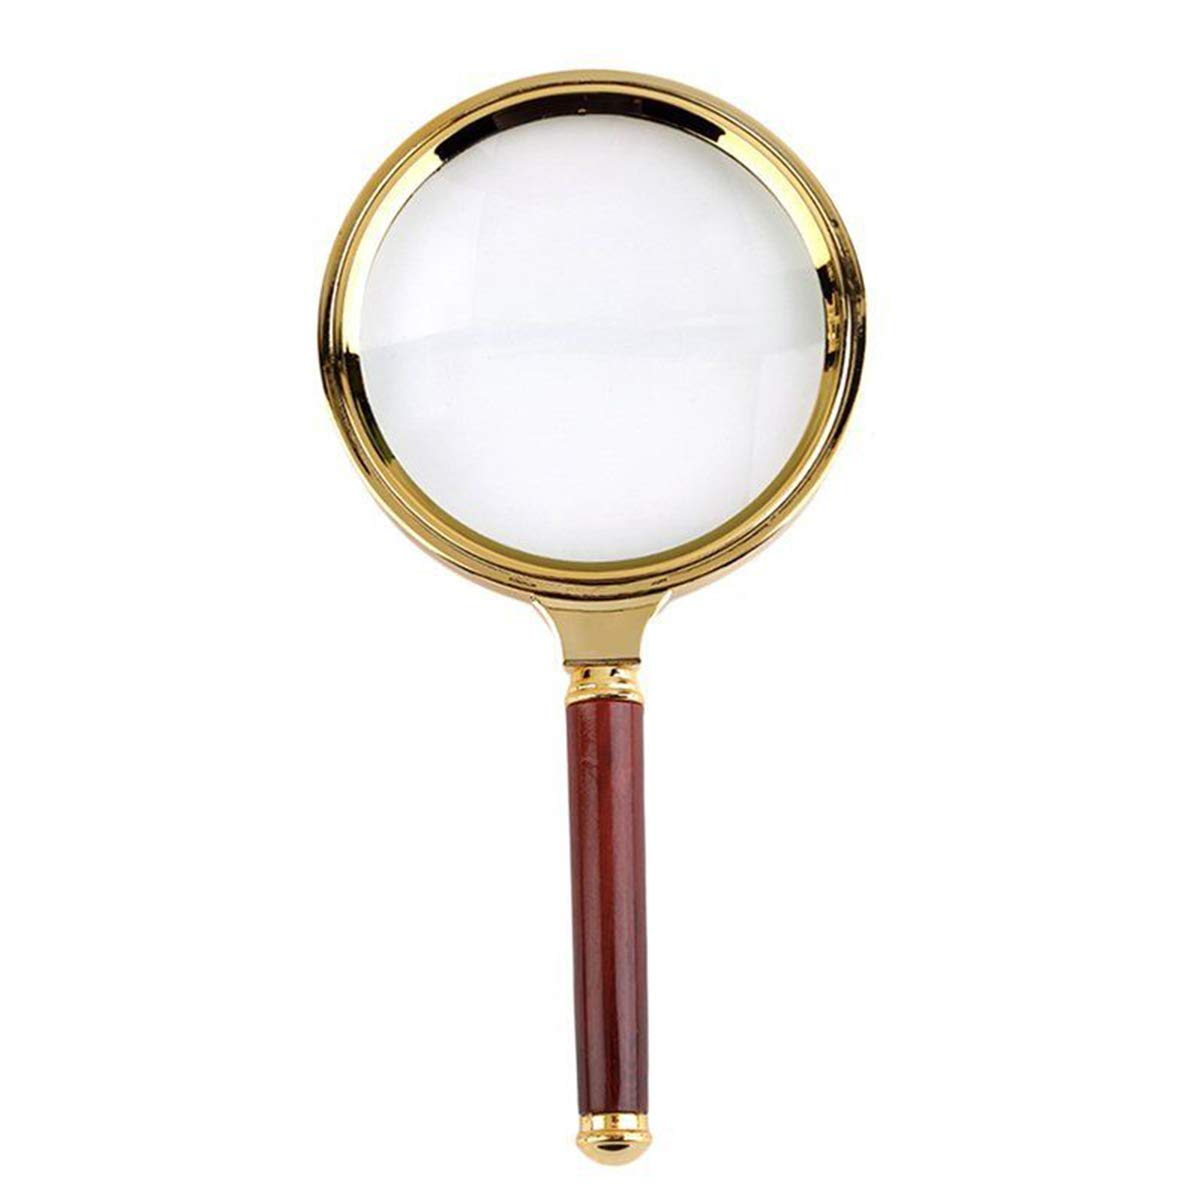 70mm/90mm Magnifying Glass,10x Handheld Magnifier, Reading Magnifier Loupe Glasses 10X with Rosewood Handle for Book and Newspaper Reading, Insect and Hobby Observation, Classroom Science AUKMONT